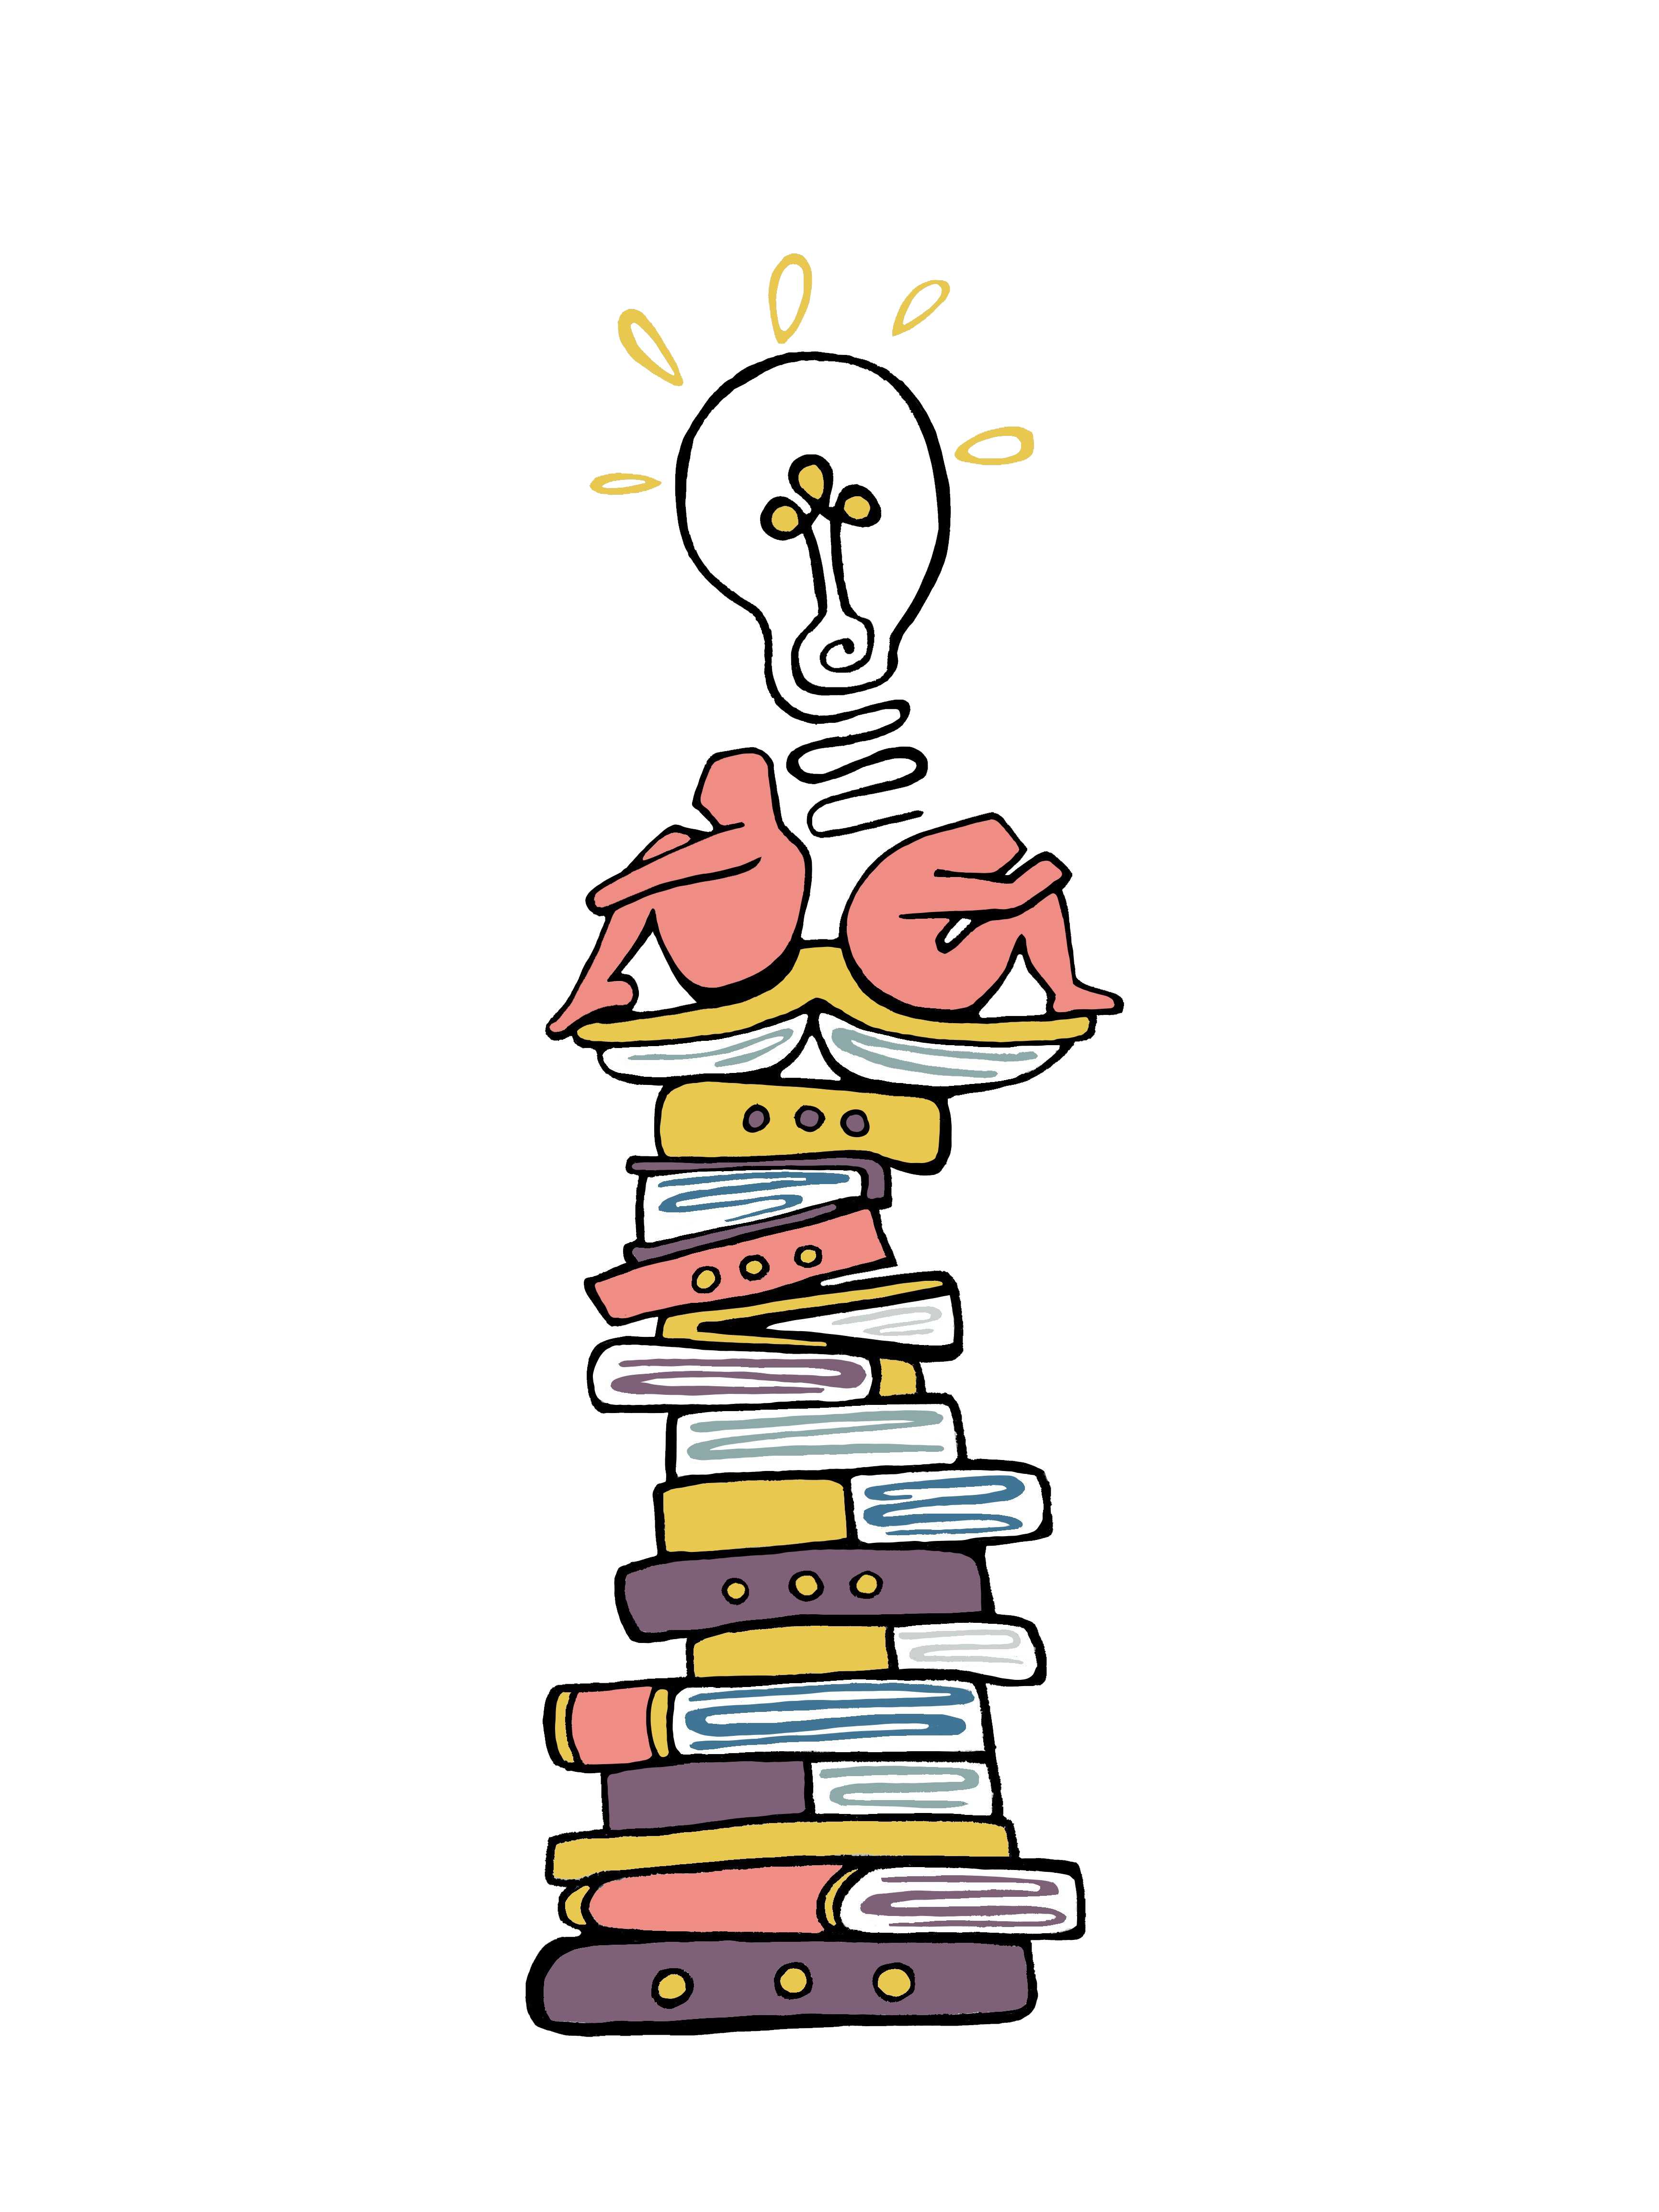 two figures sitting on a pile of books sharing a lightbulb thought